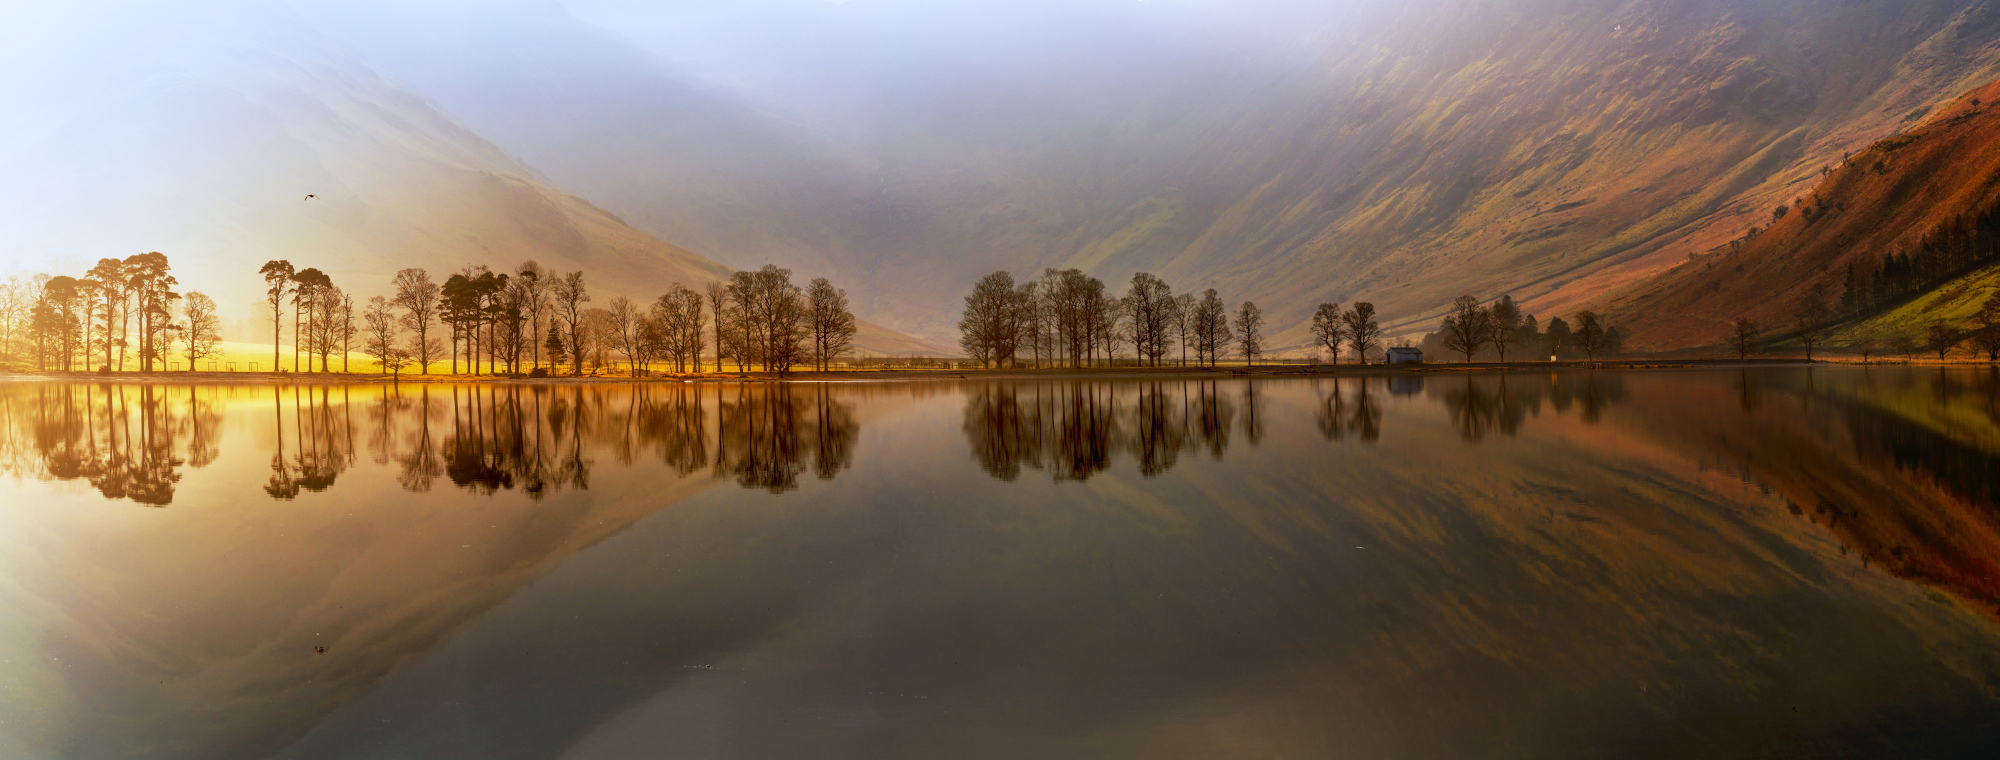 Landscape photography /THE LAST DAYS OF WINTER THE ENGLISH LAKE DISTRICT BUTTERMERE